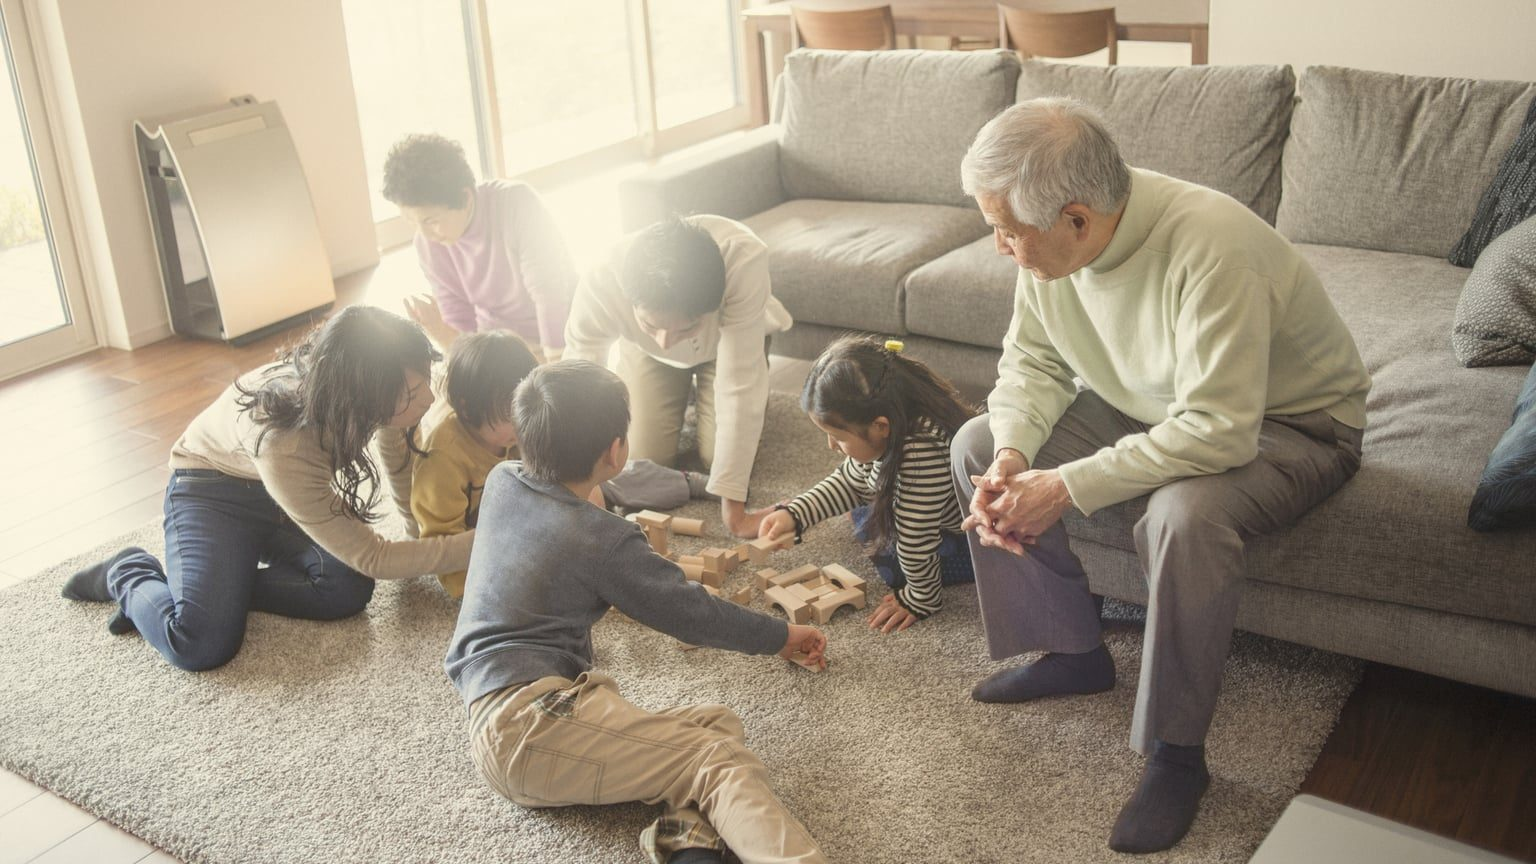 Multigenerational family playing in living room